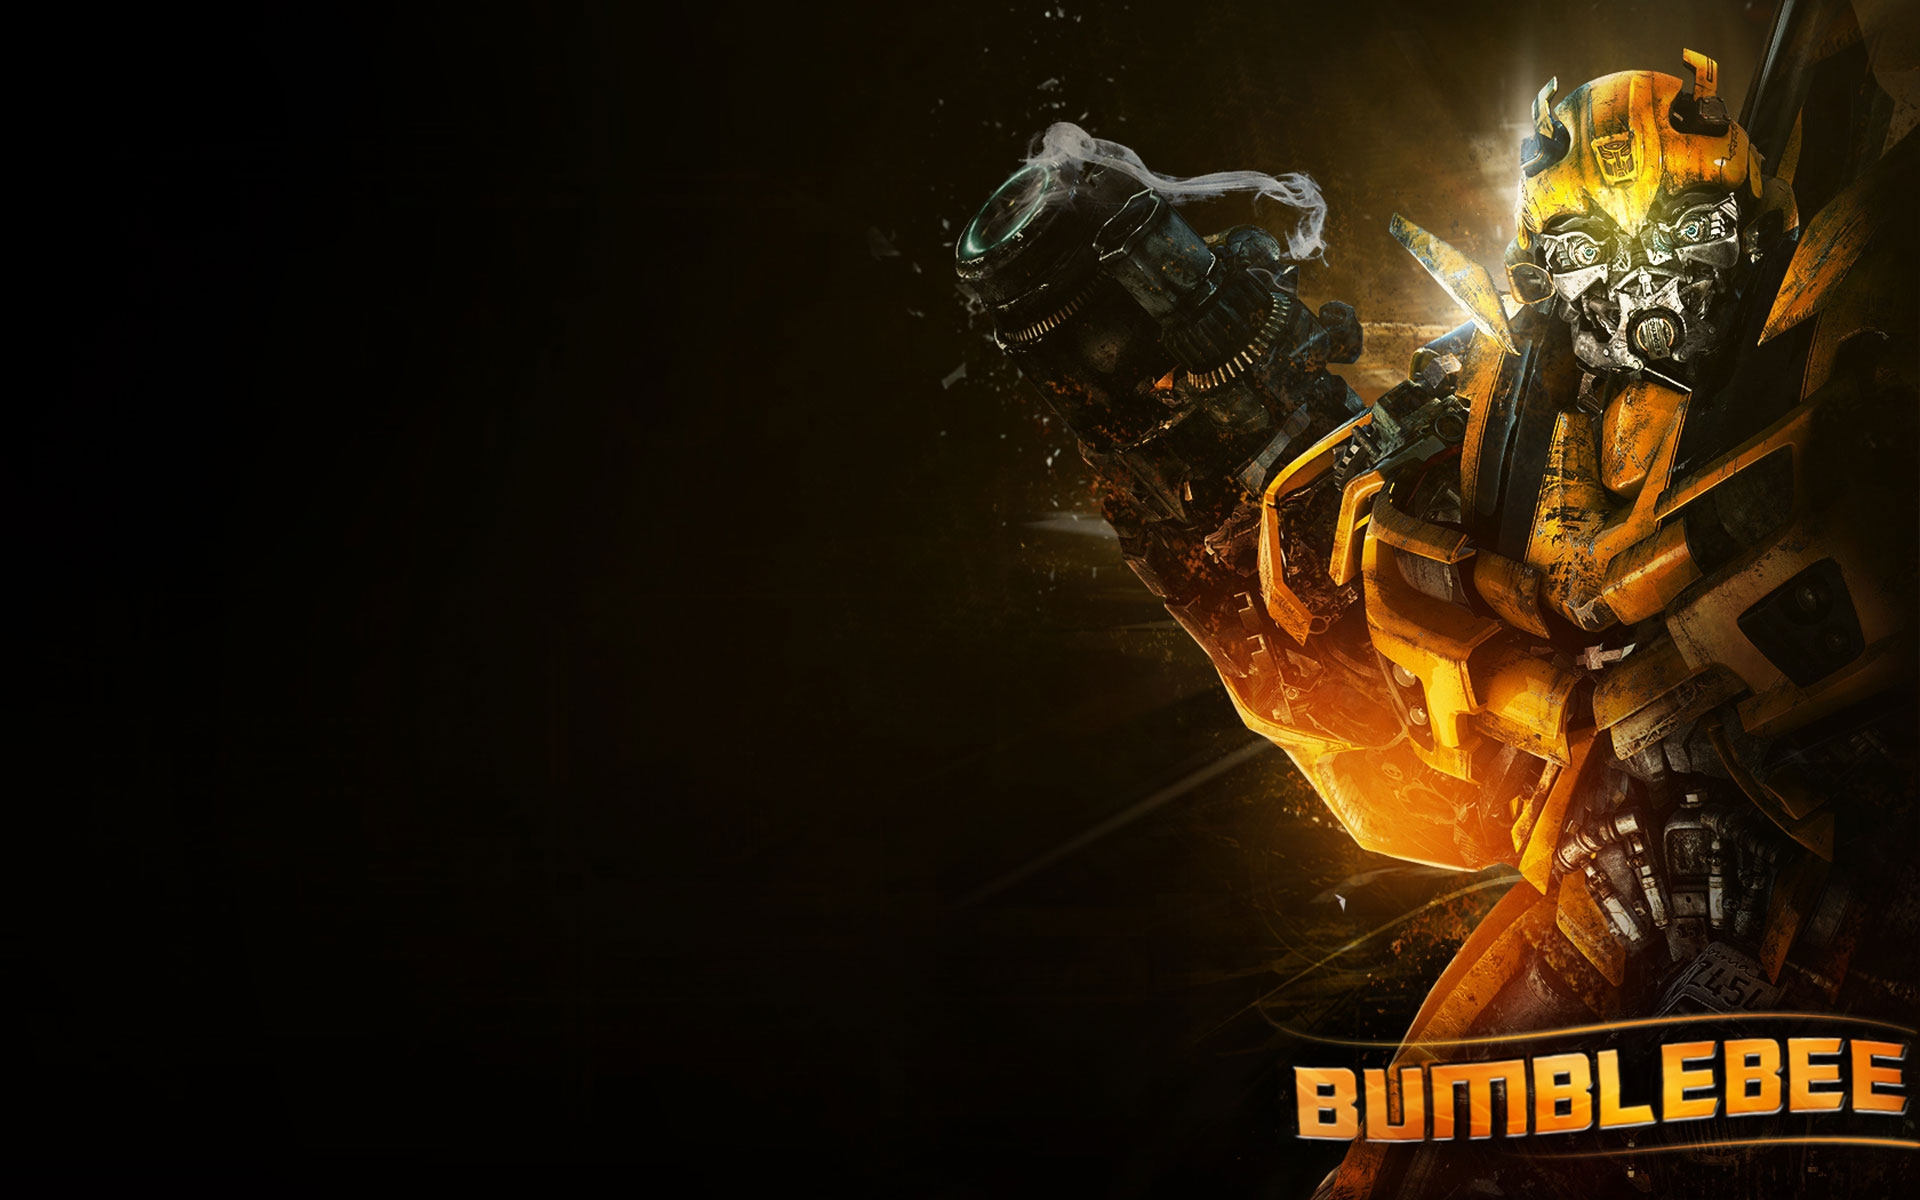 Transformer Bumblebee Wallpaper